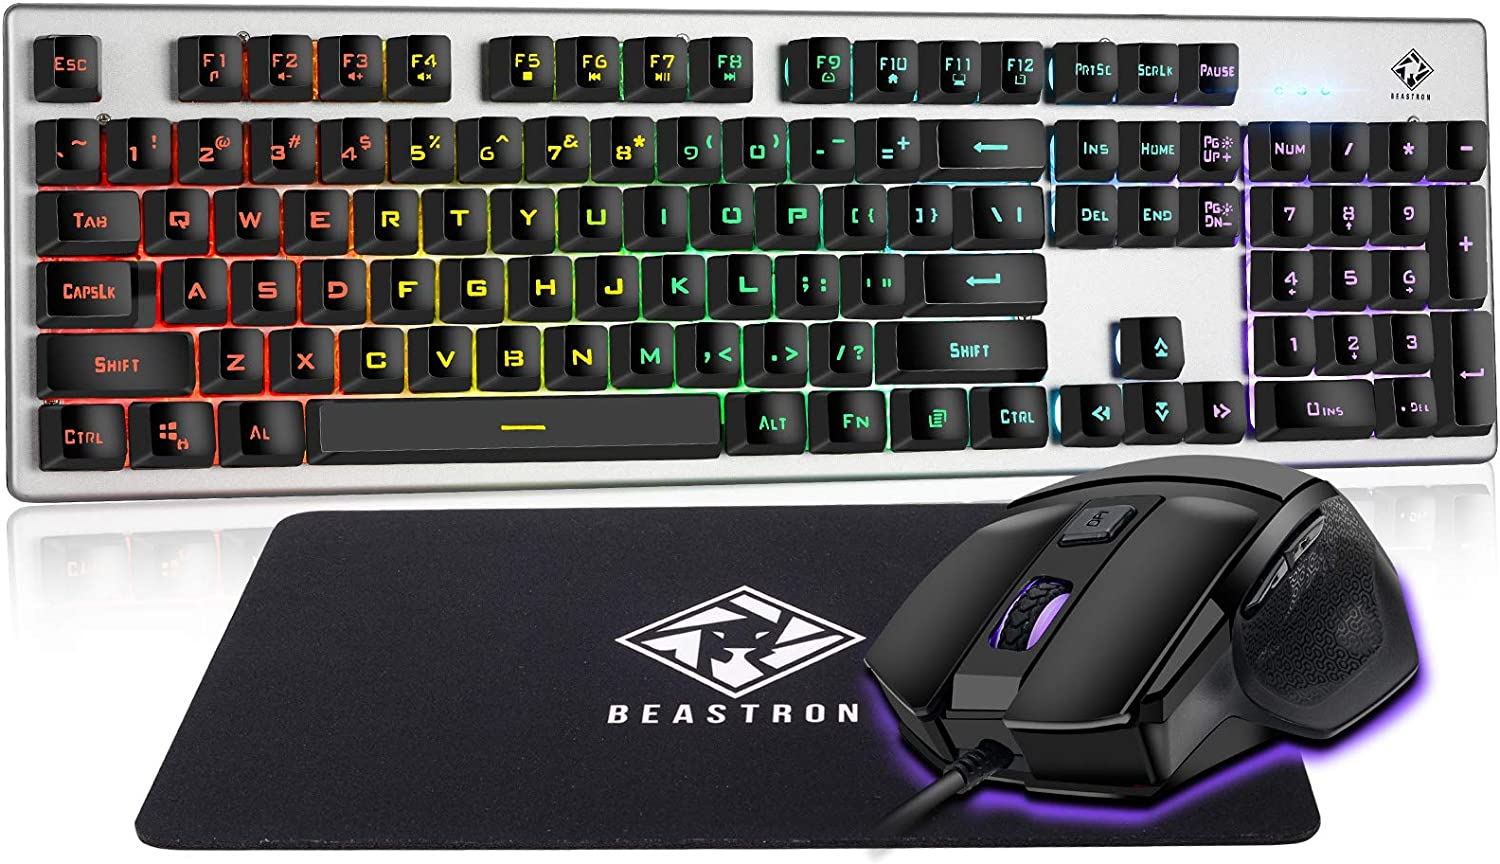 Beastron Gaming Keybaord and Mouse Gaming Mouse Pad, LED Rainbow Backlit USB Wired Computer Keyboard 104 Keys Mechanical Feel Gaming Keyboard Set for Windows PC Gamer, Black